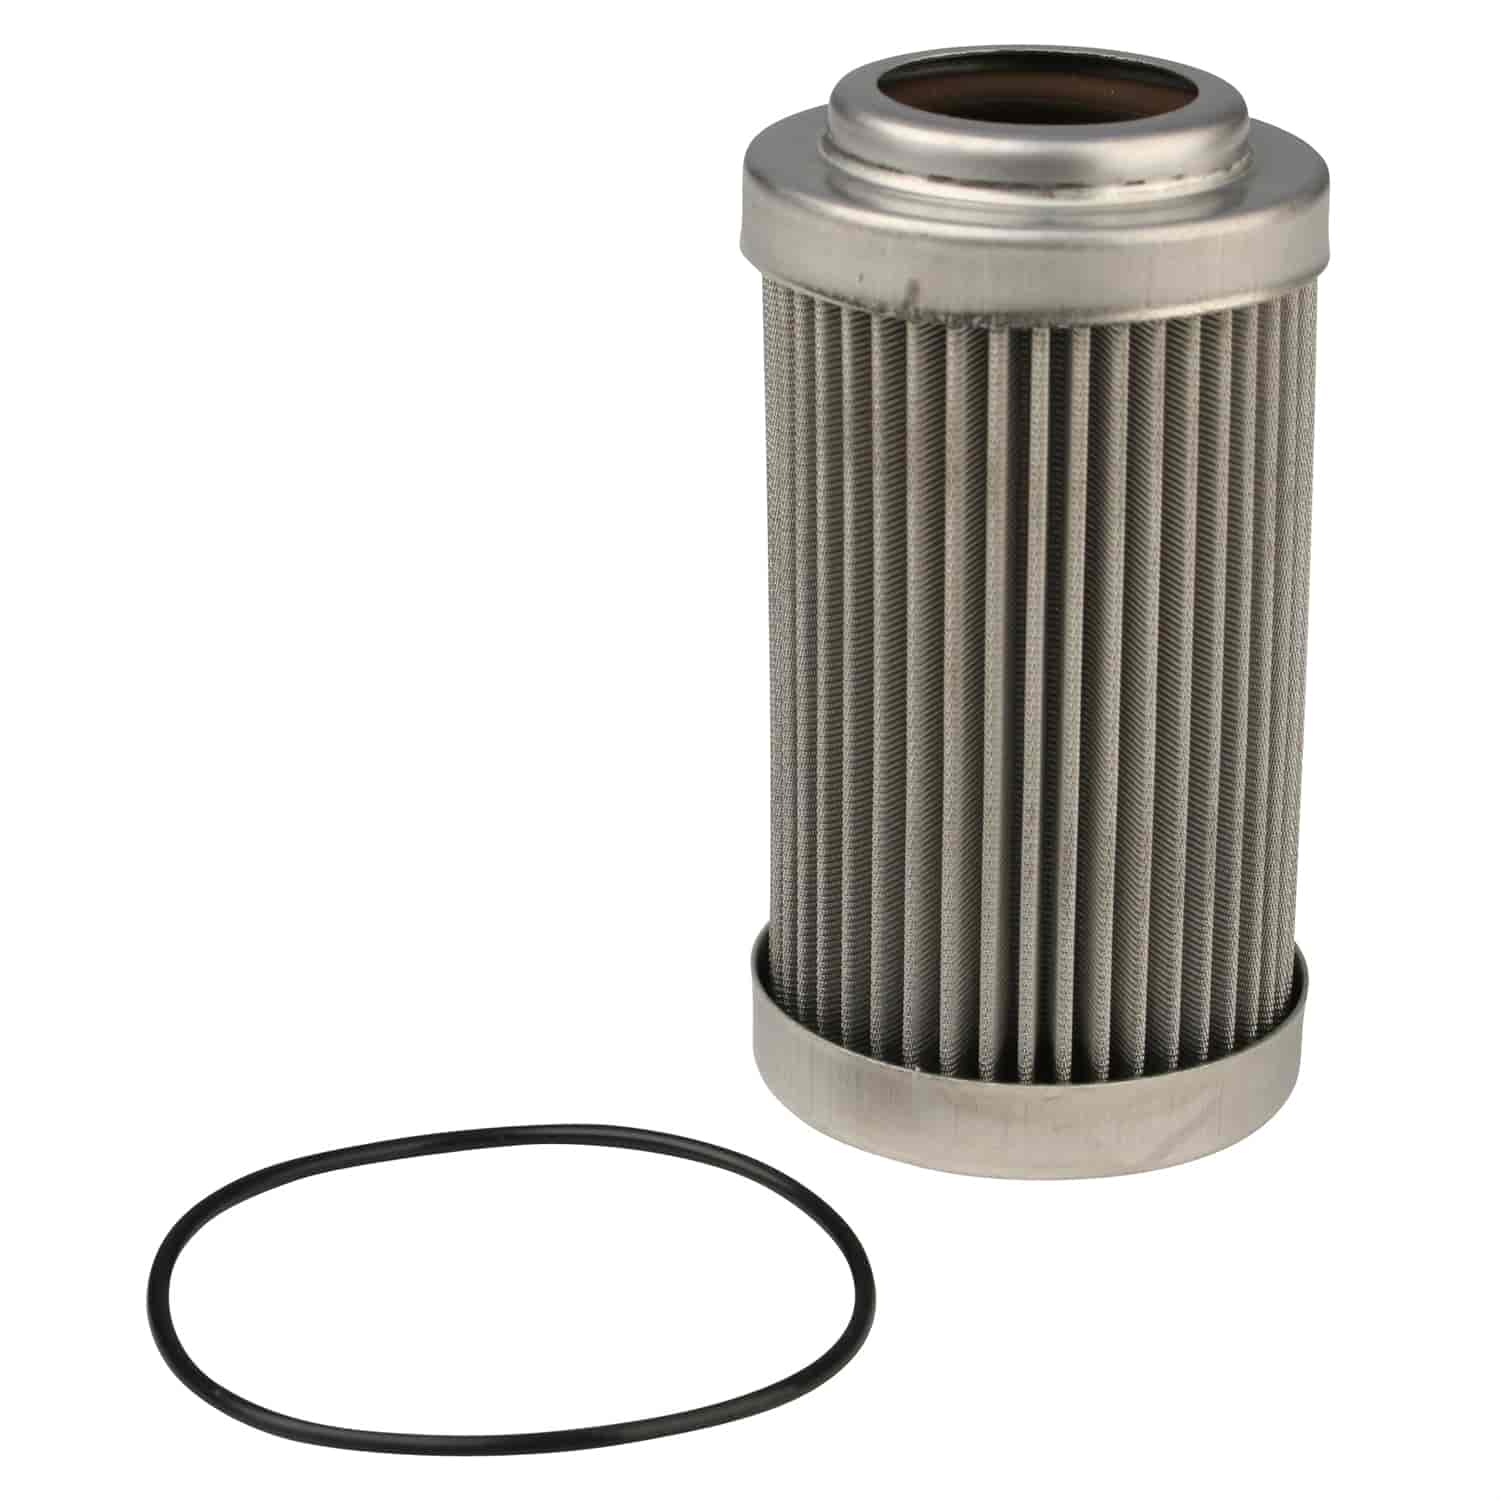 Aeromotive 12635 - Aeromotive In-Line Fuel Filters